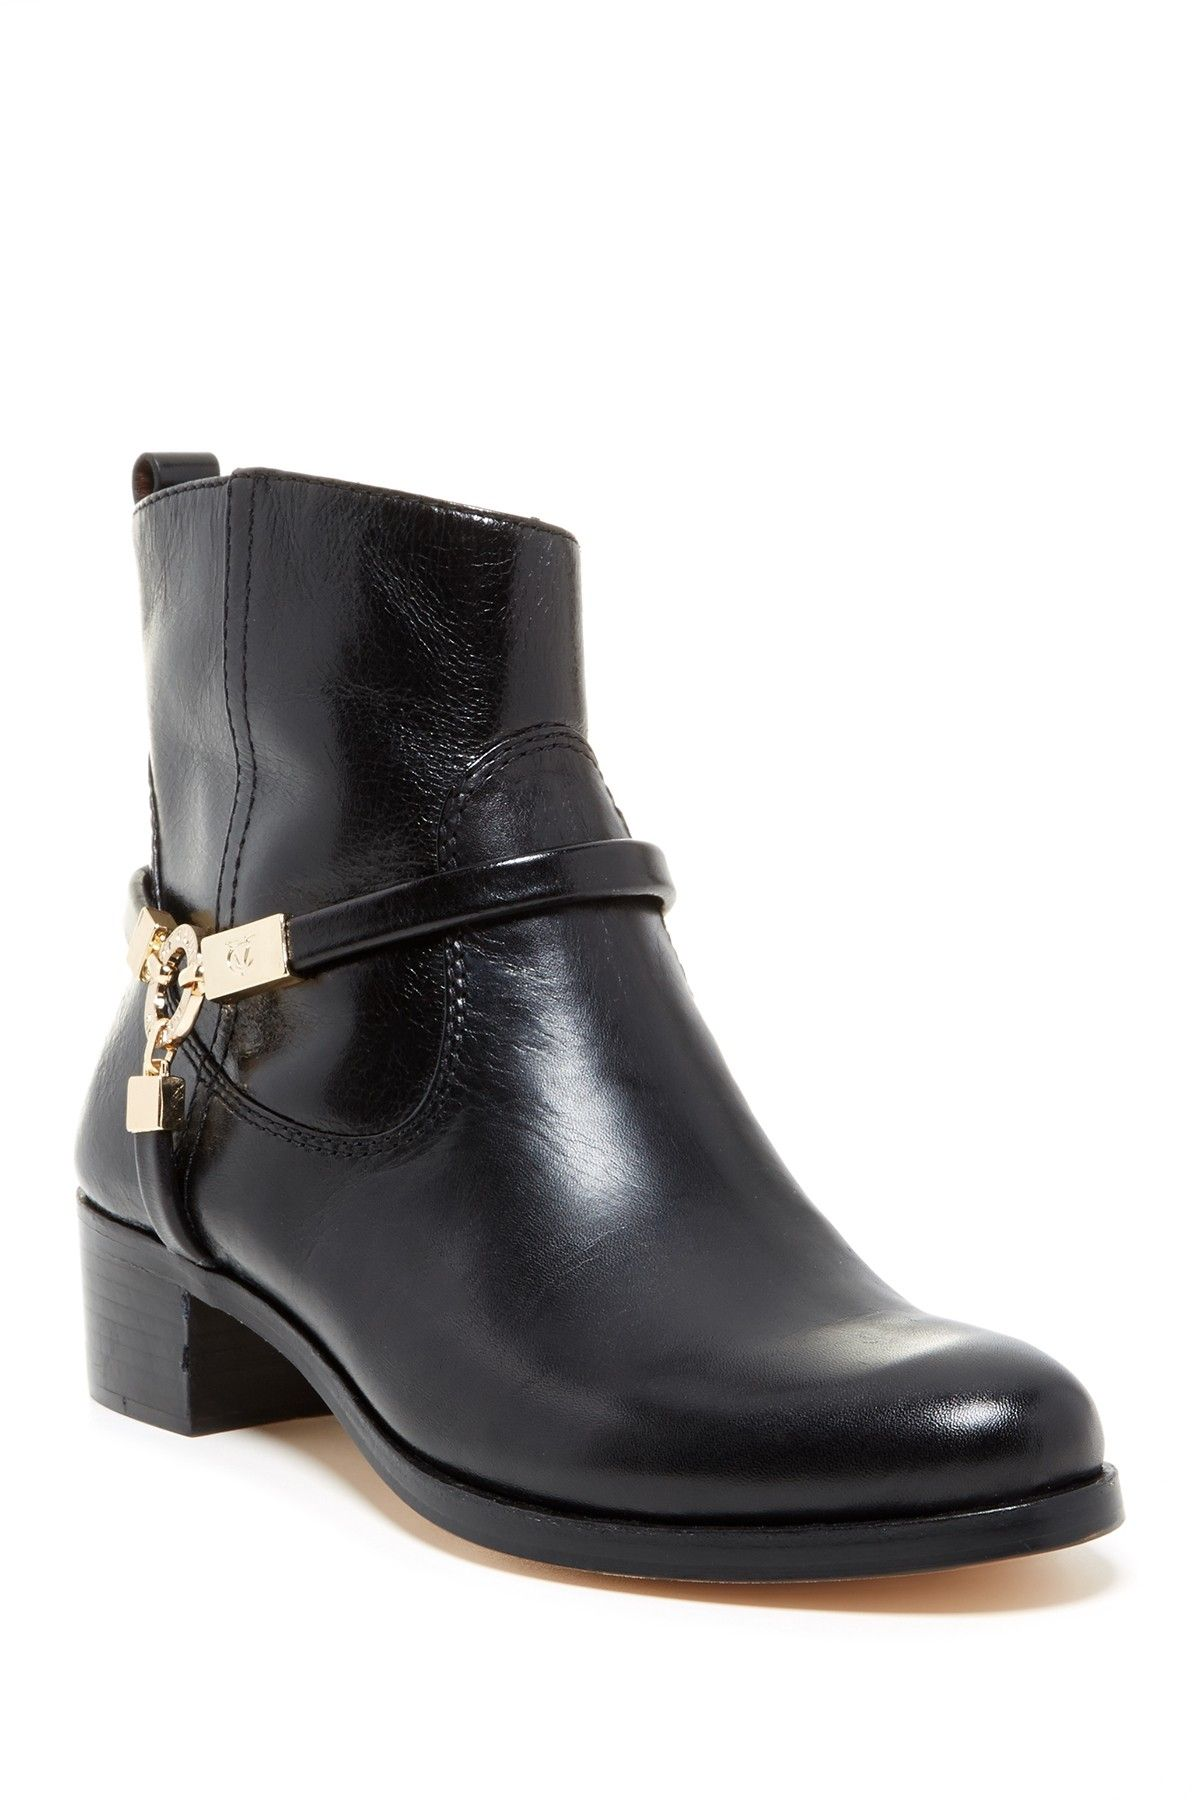 Vince Camuto Keeley Boot